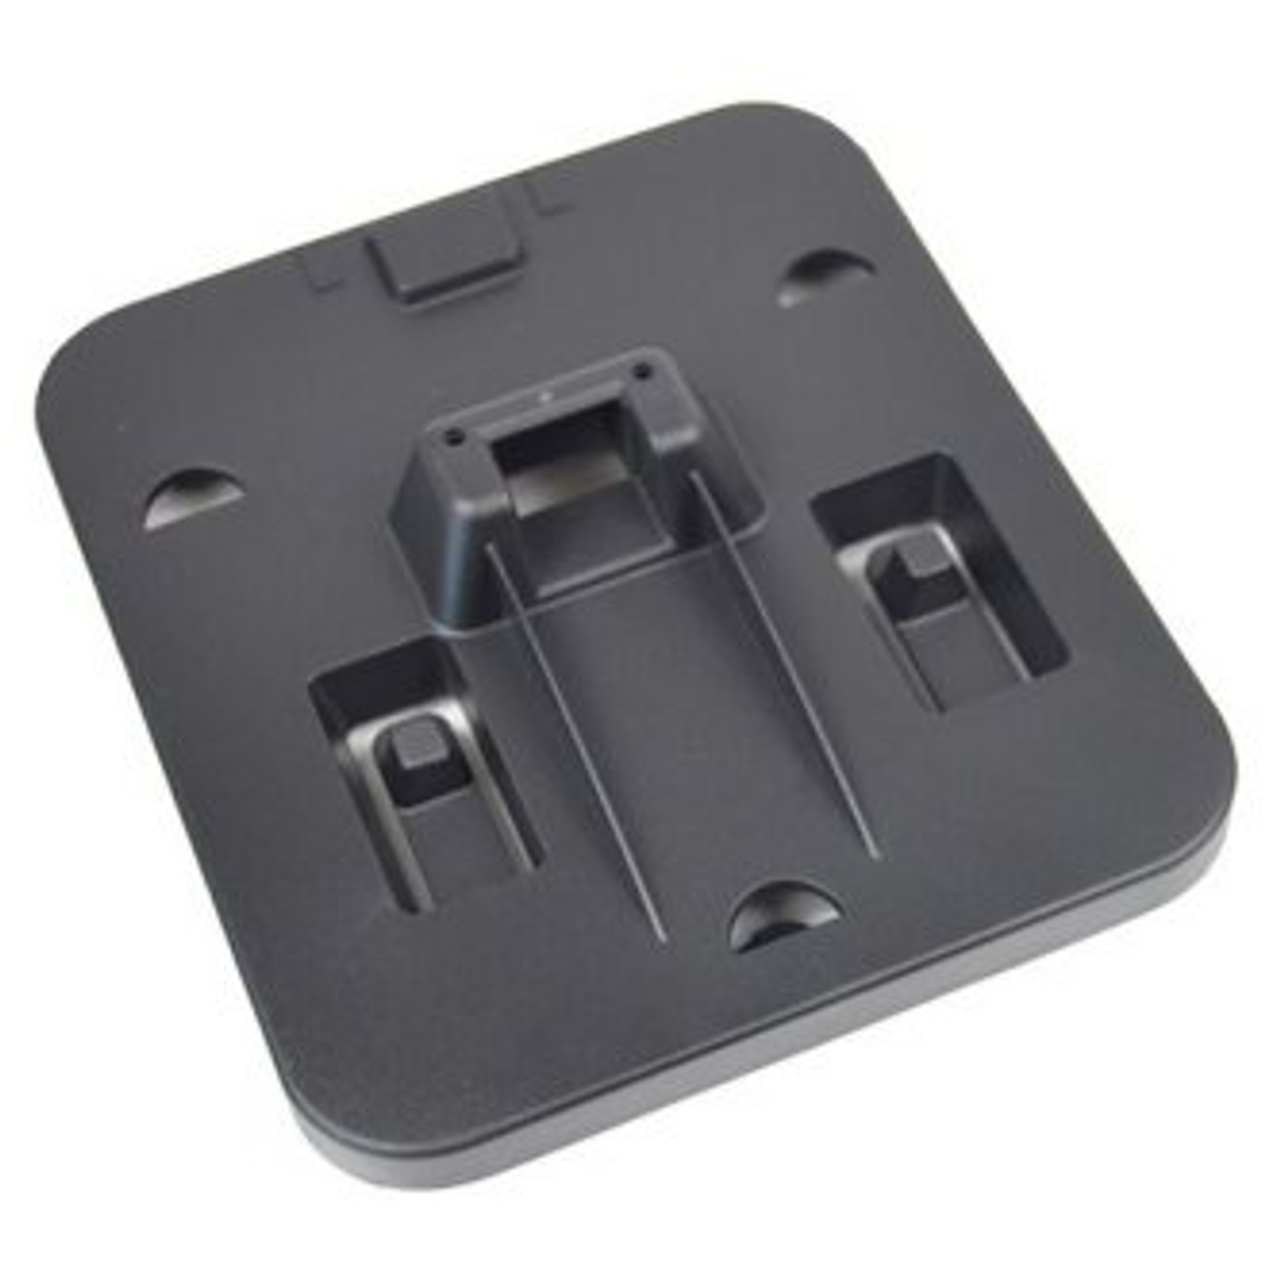 Ingenico iSC250 First Base Contour Wall Mount by Tailwind